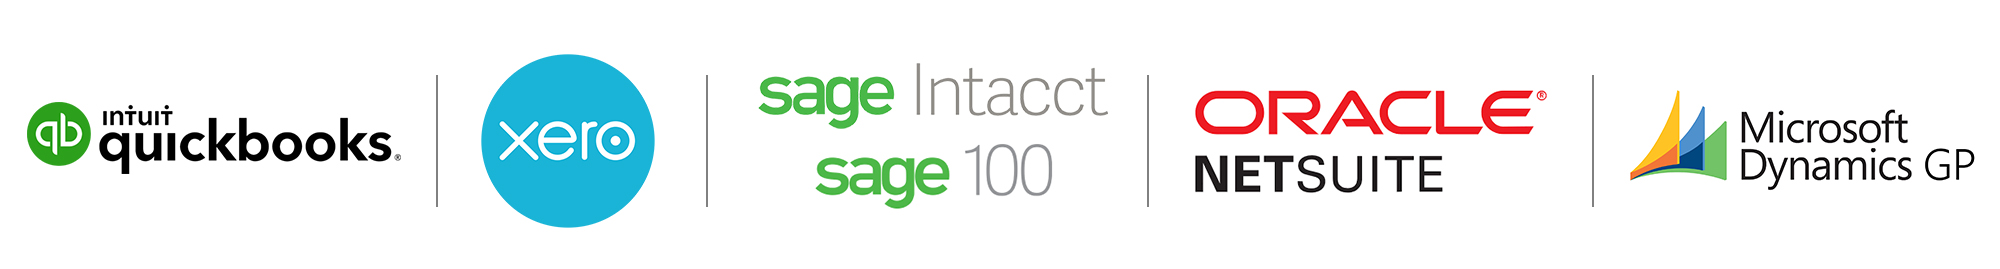 Invoice to Pay Integration Capabilities